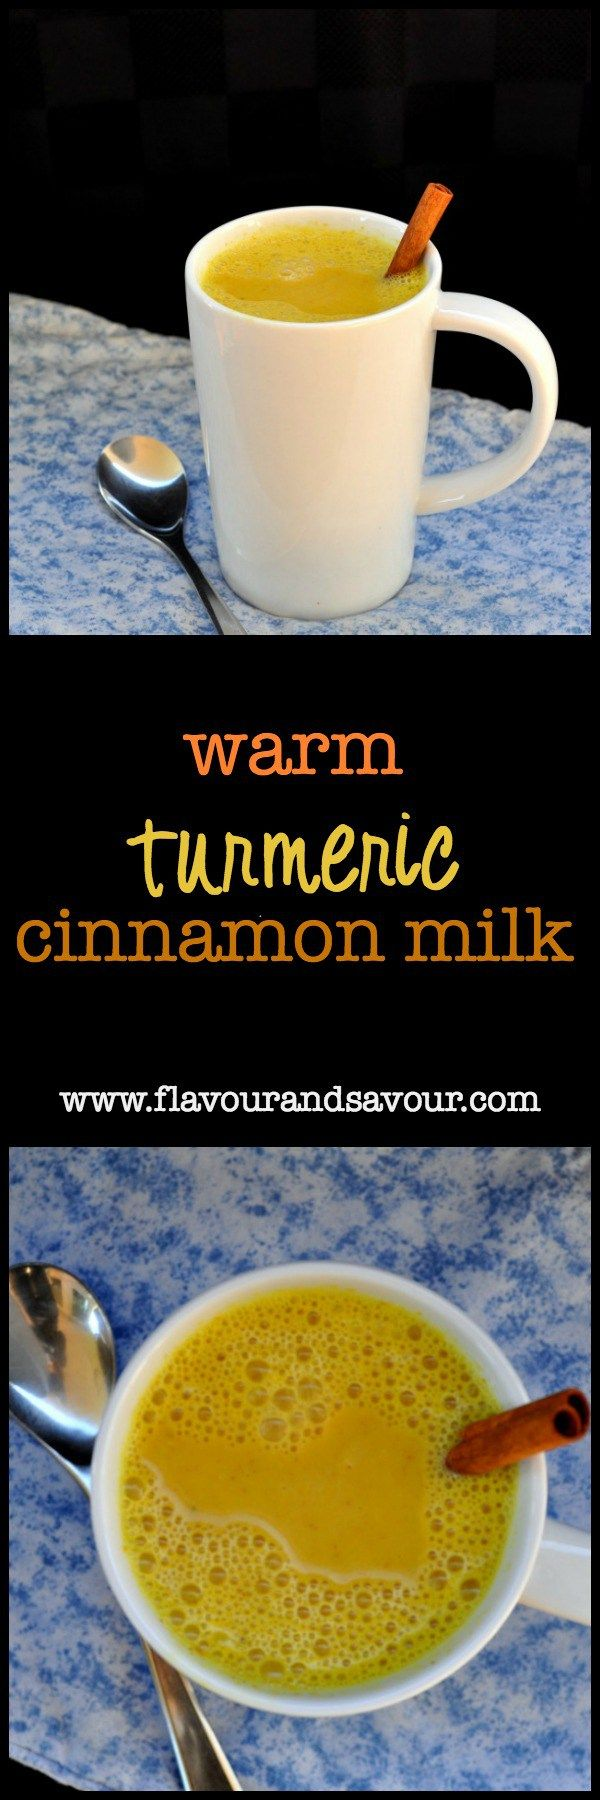 Warm Turmeric Cinnamon Milk Recipe Turmeric recipes